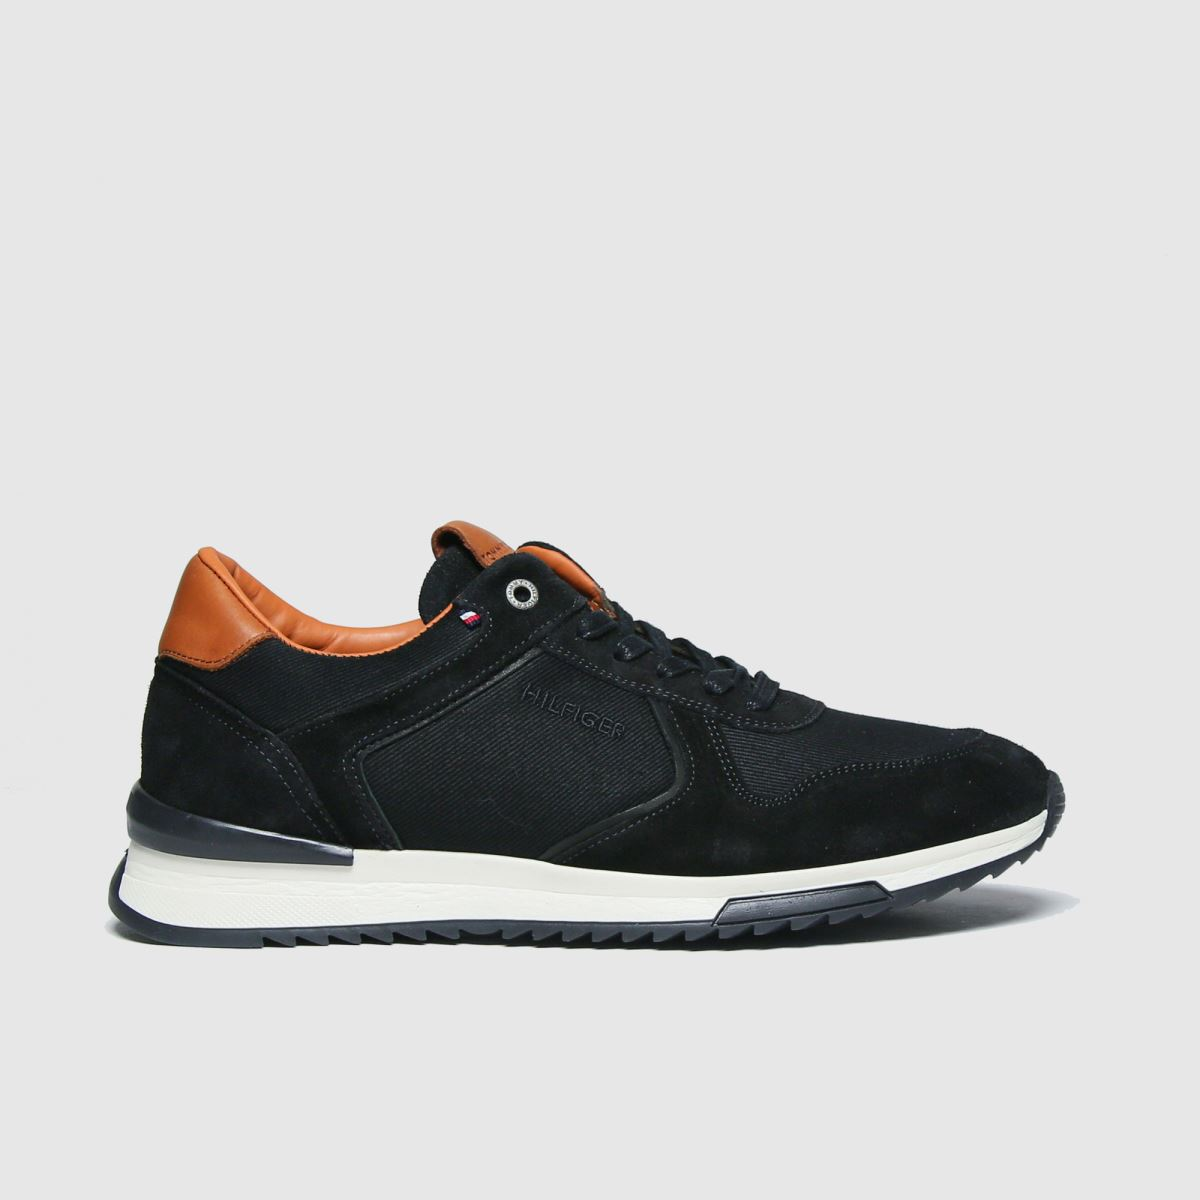 Tommy Hilfiger Black Runner Craft Mix Sneaker Trainers